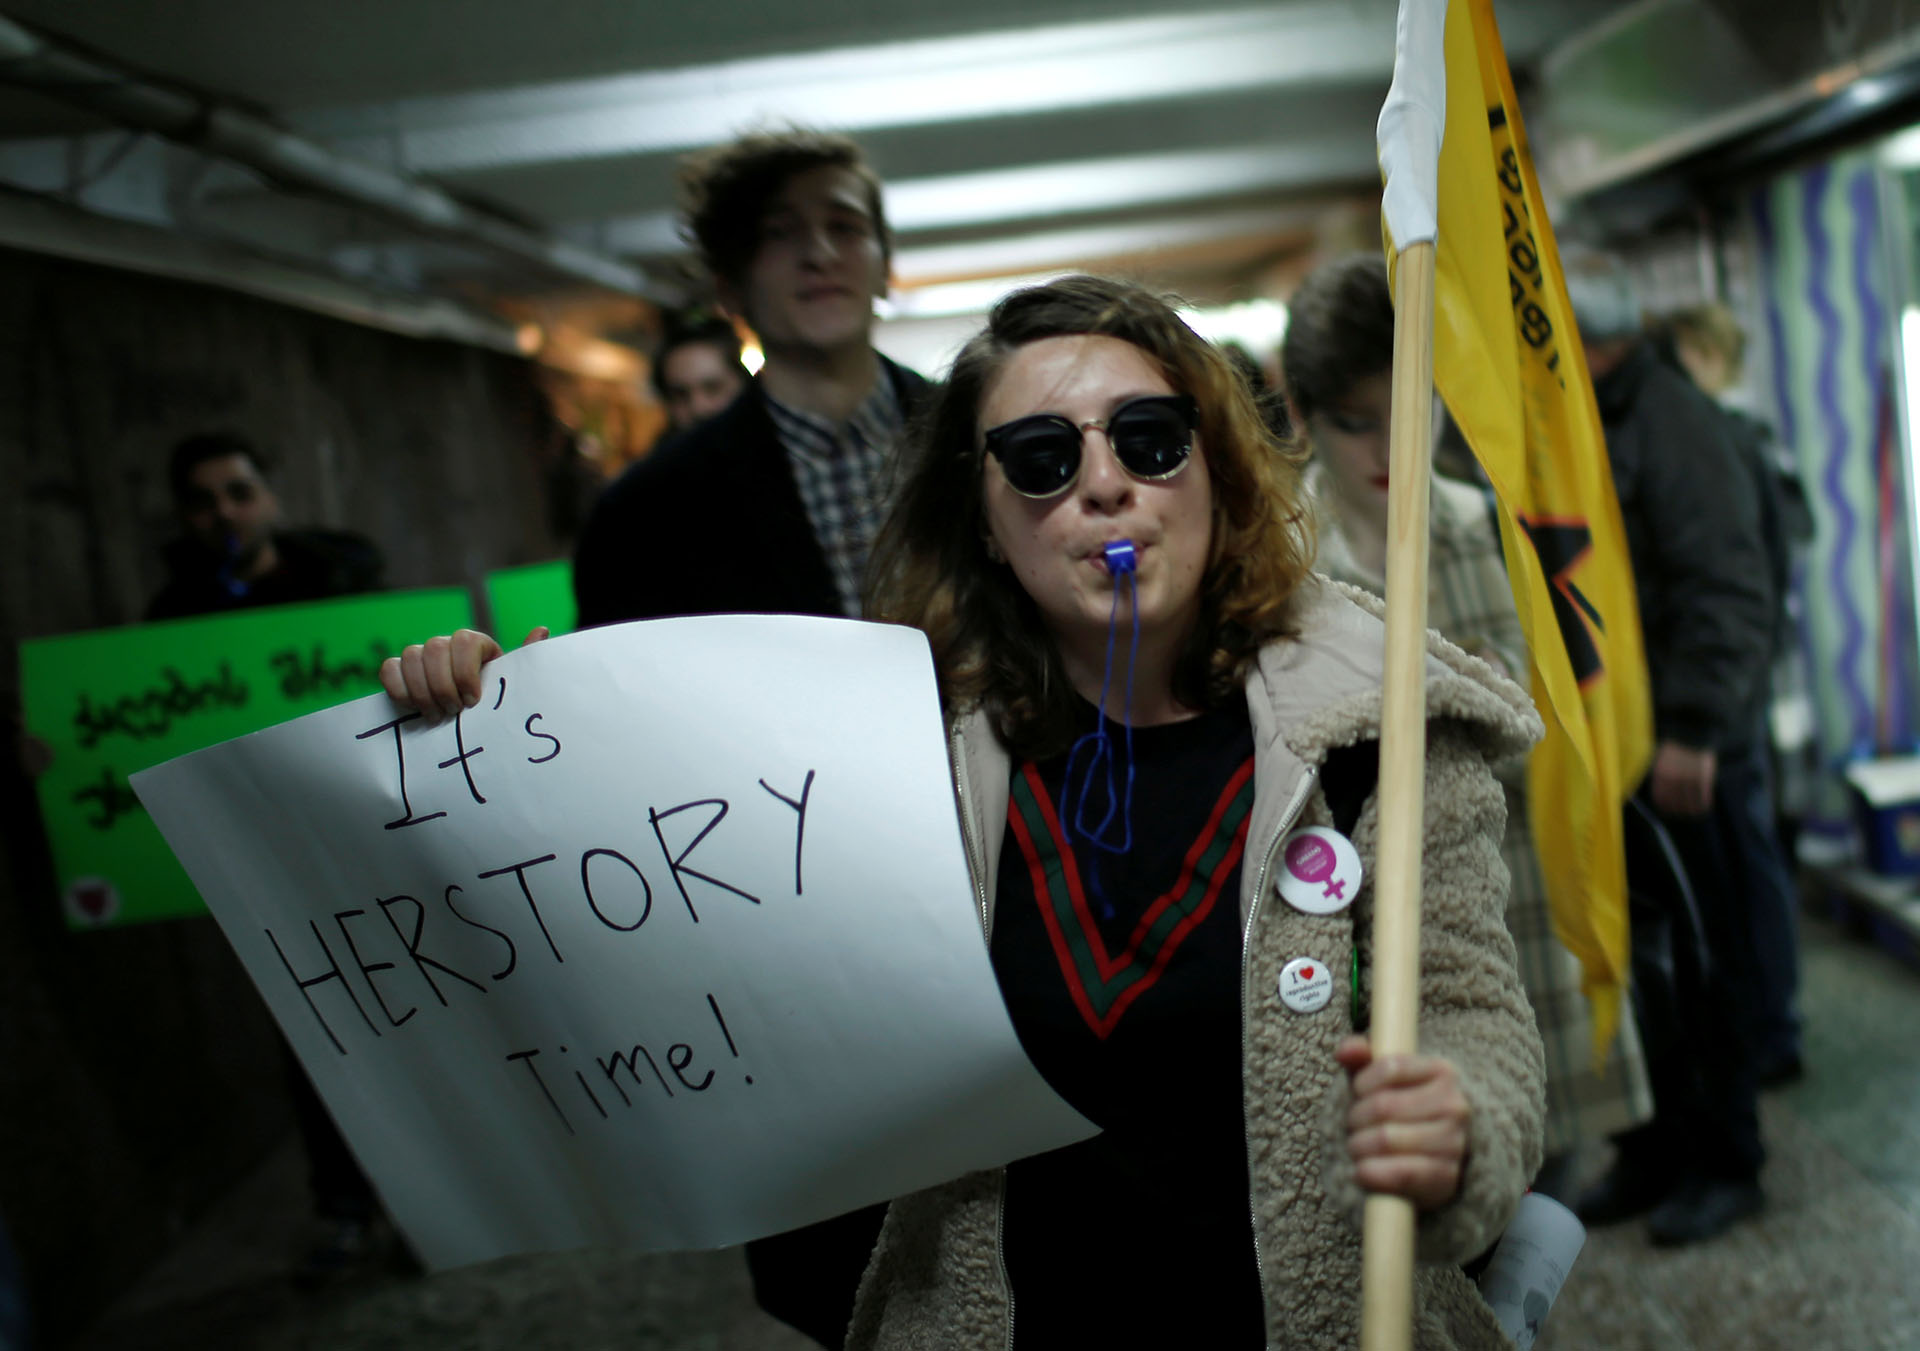 Women's right activists march on the street on the International Women's Day in Tbilisi